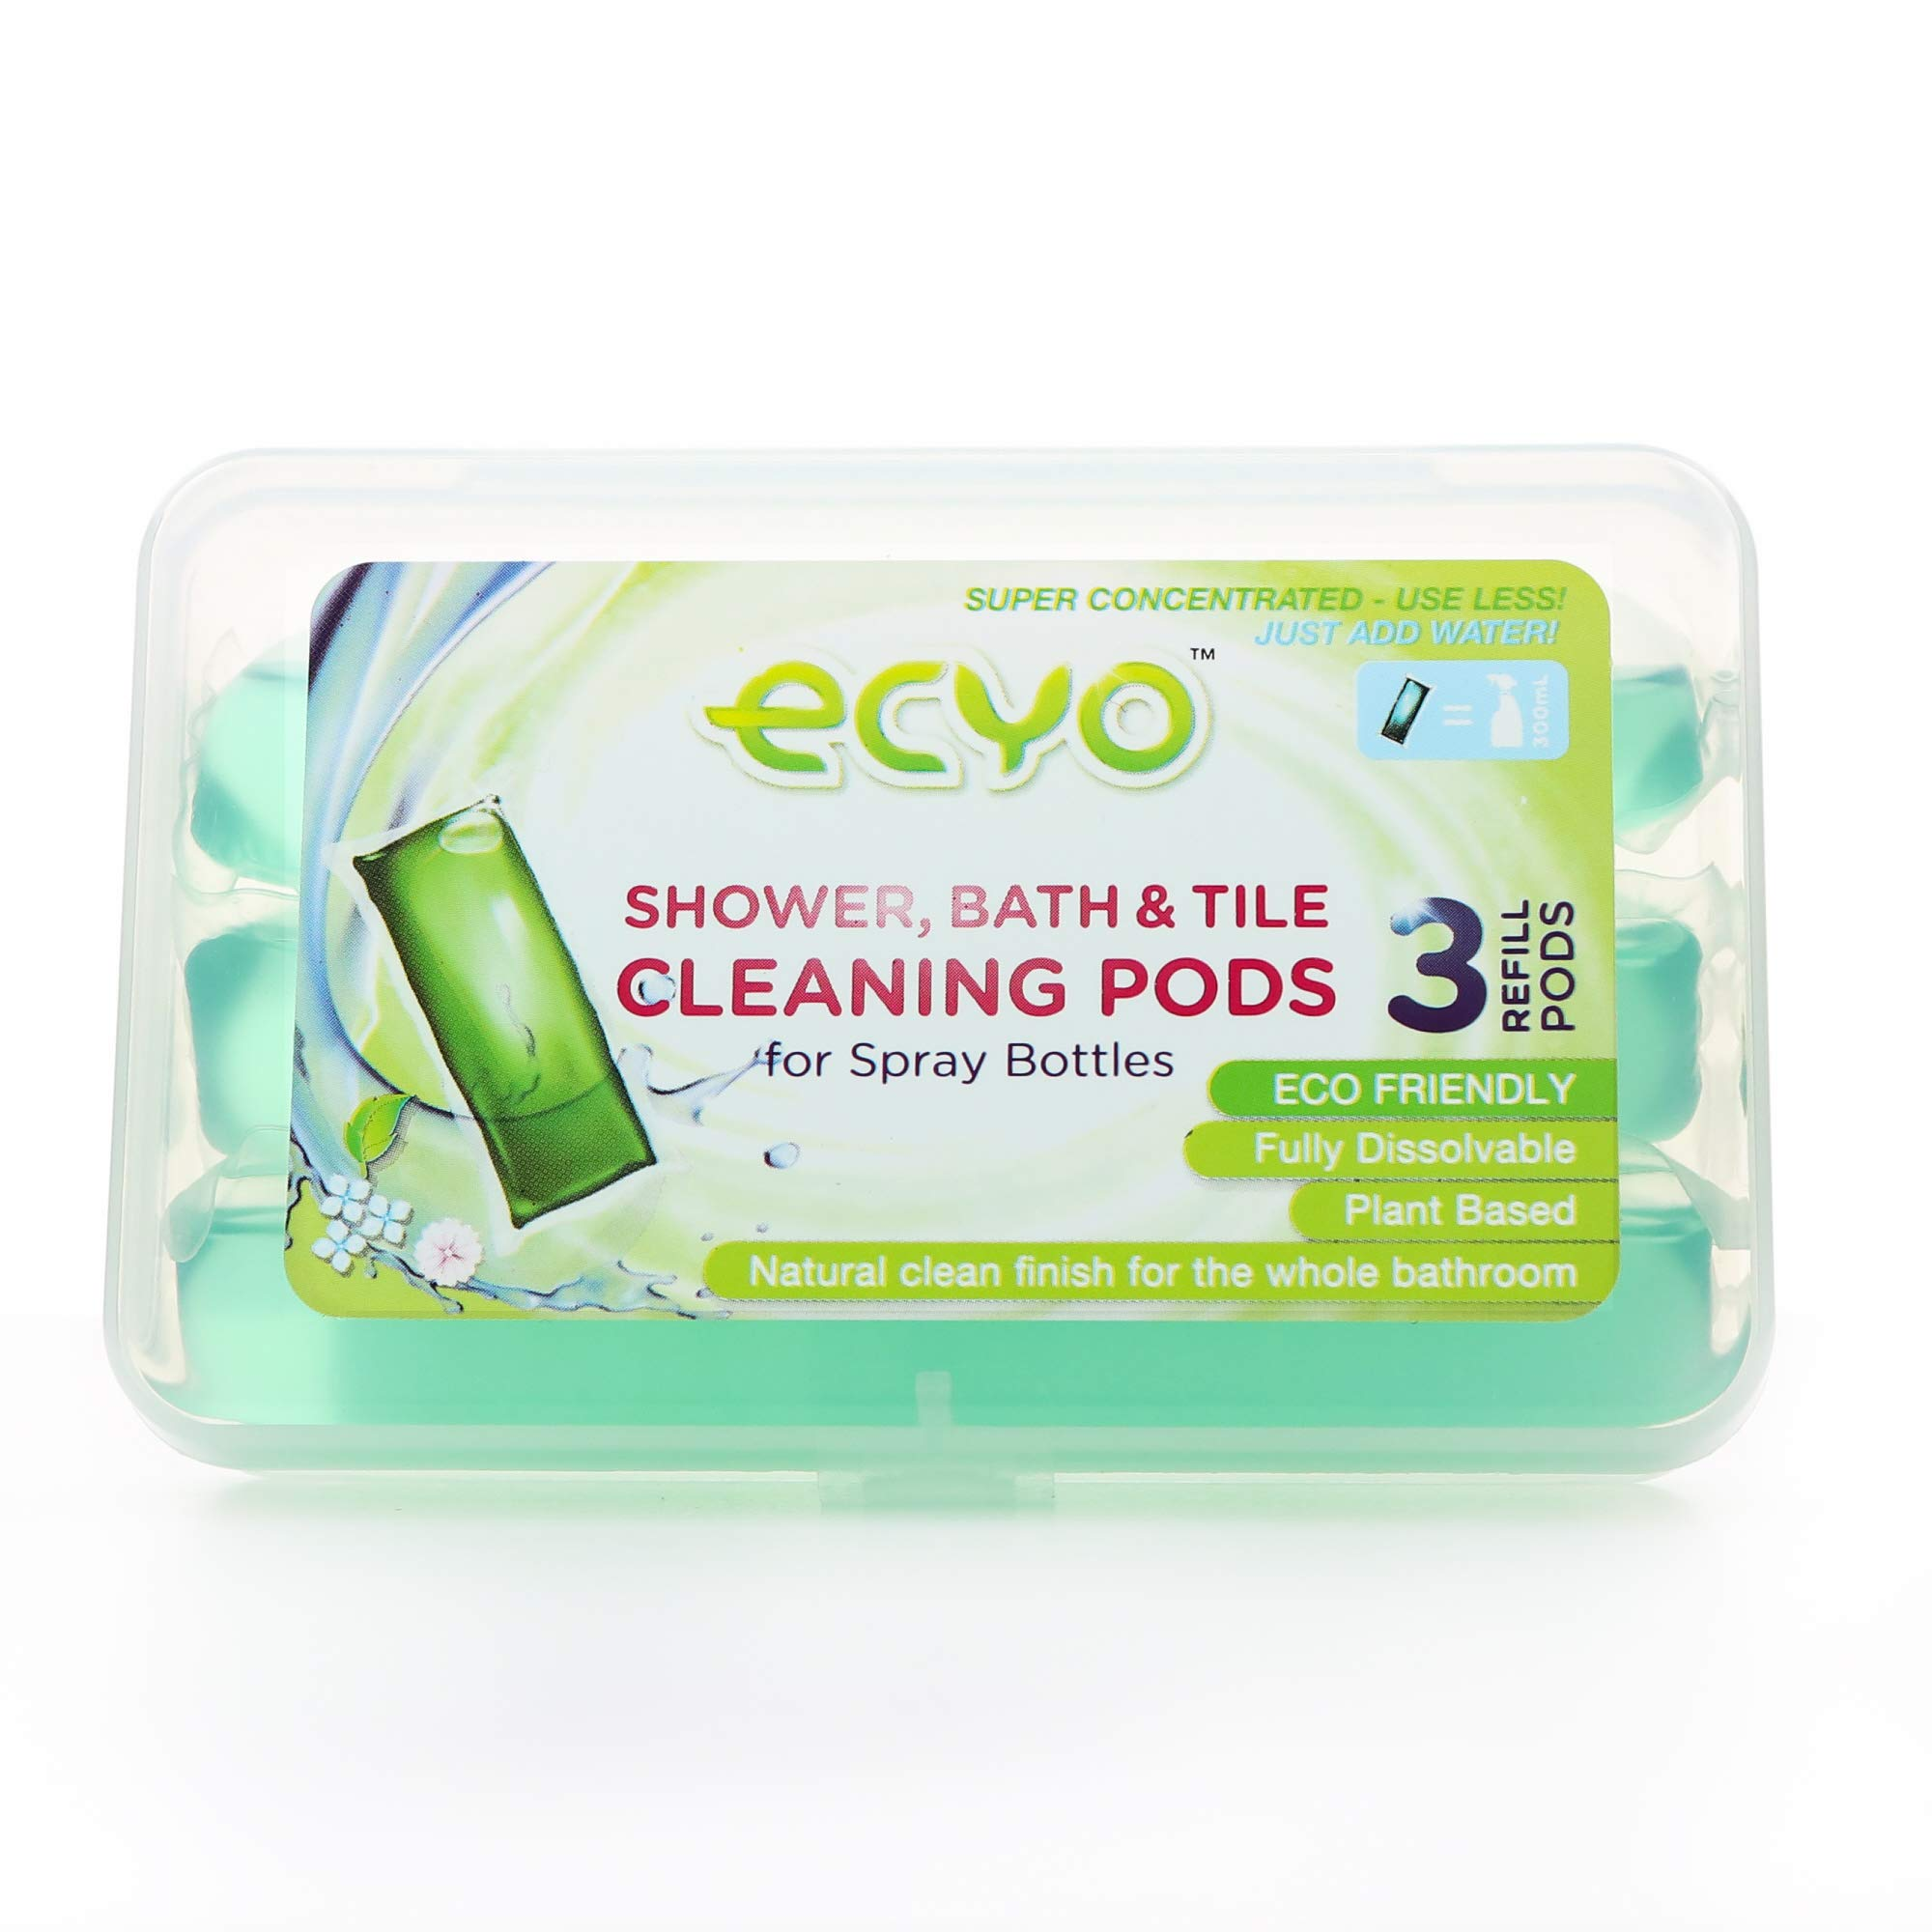 Ecyo Shower, Bath and Tile Cleaning Pods with 3 Refill Pods, Disinfecting, Streak Free, Eco-Friendly Cleaning Products by Ecyo